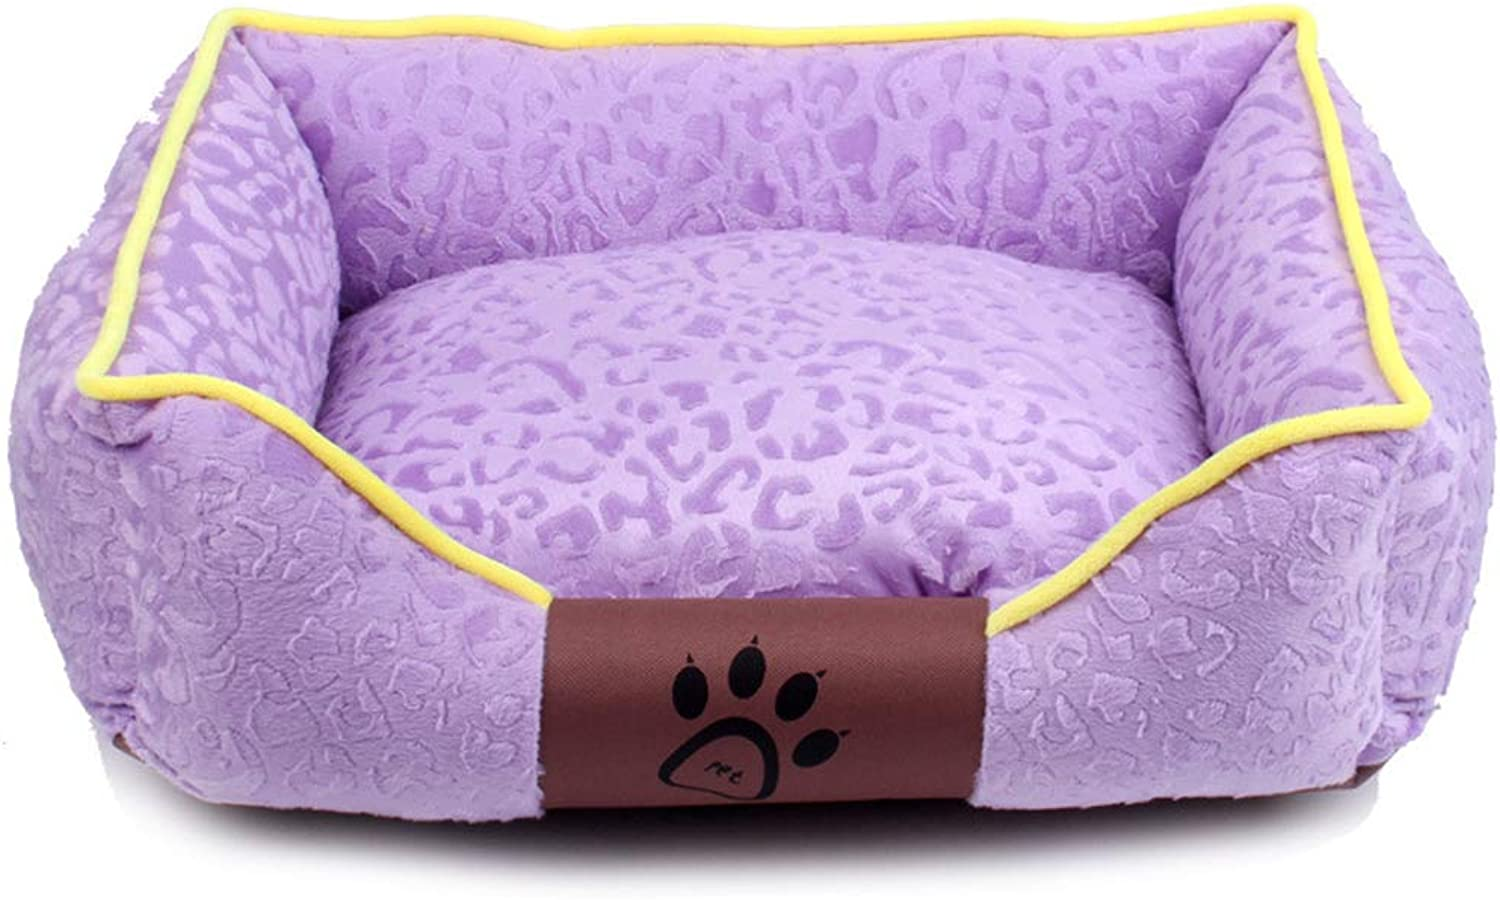 Dog Bed, Four Seasons Breathable ThreeDimensional Flannel Pet Mat Nest Square Keep Warm for Comfortable Moisture Proof Washable Soft Warm Bed (color   A, Size   XL.80x65cm)